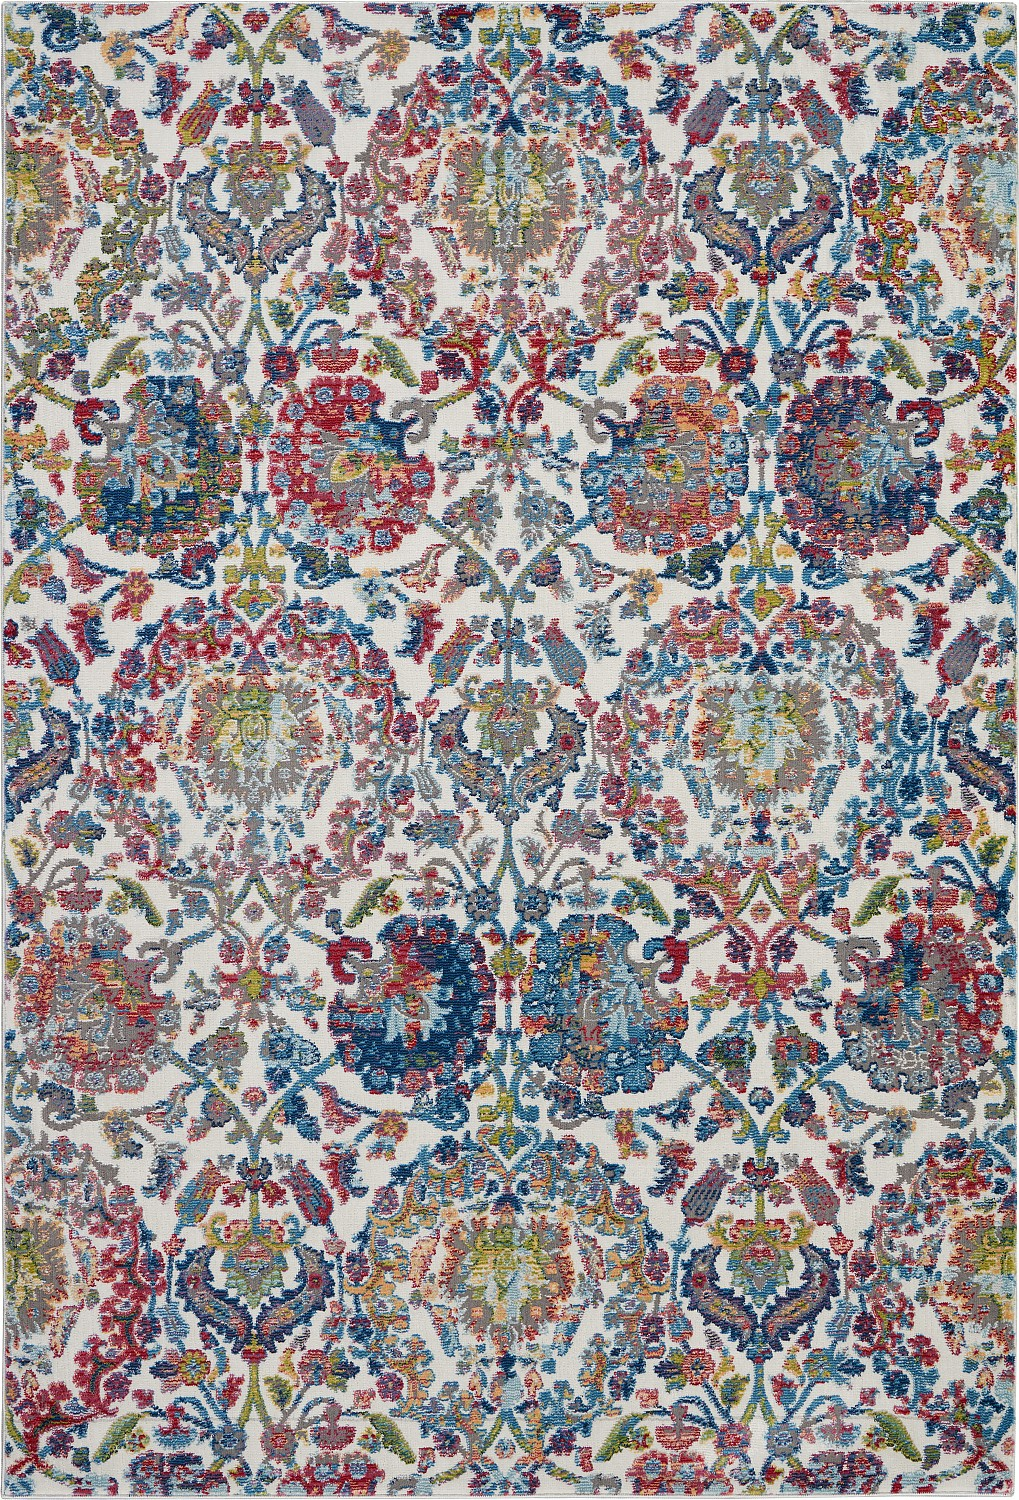 Global Vintage GLB06 Ivory/Blue Area Rug Colorful Vintage Da